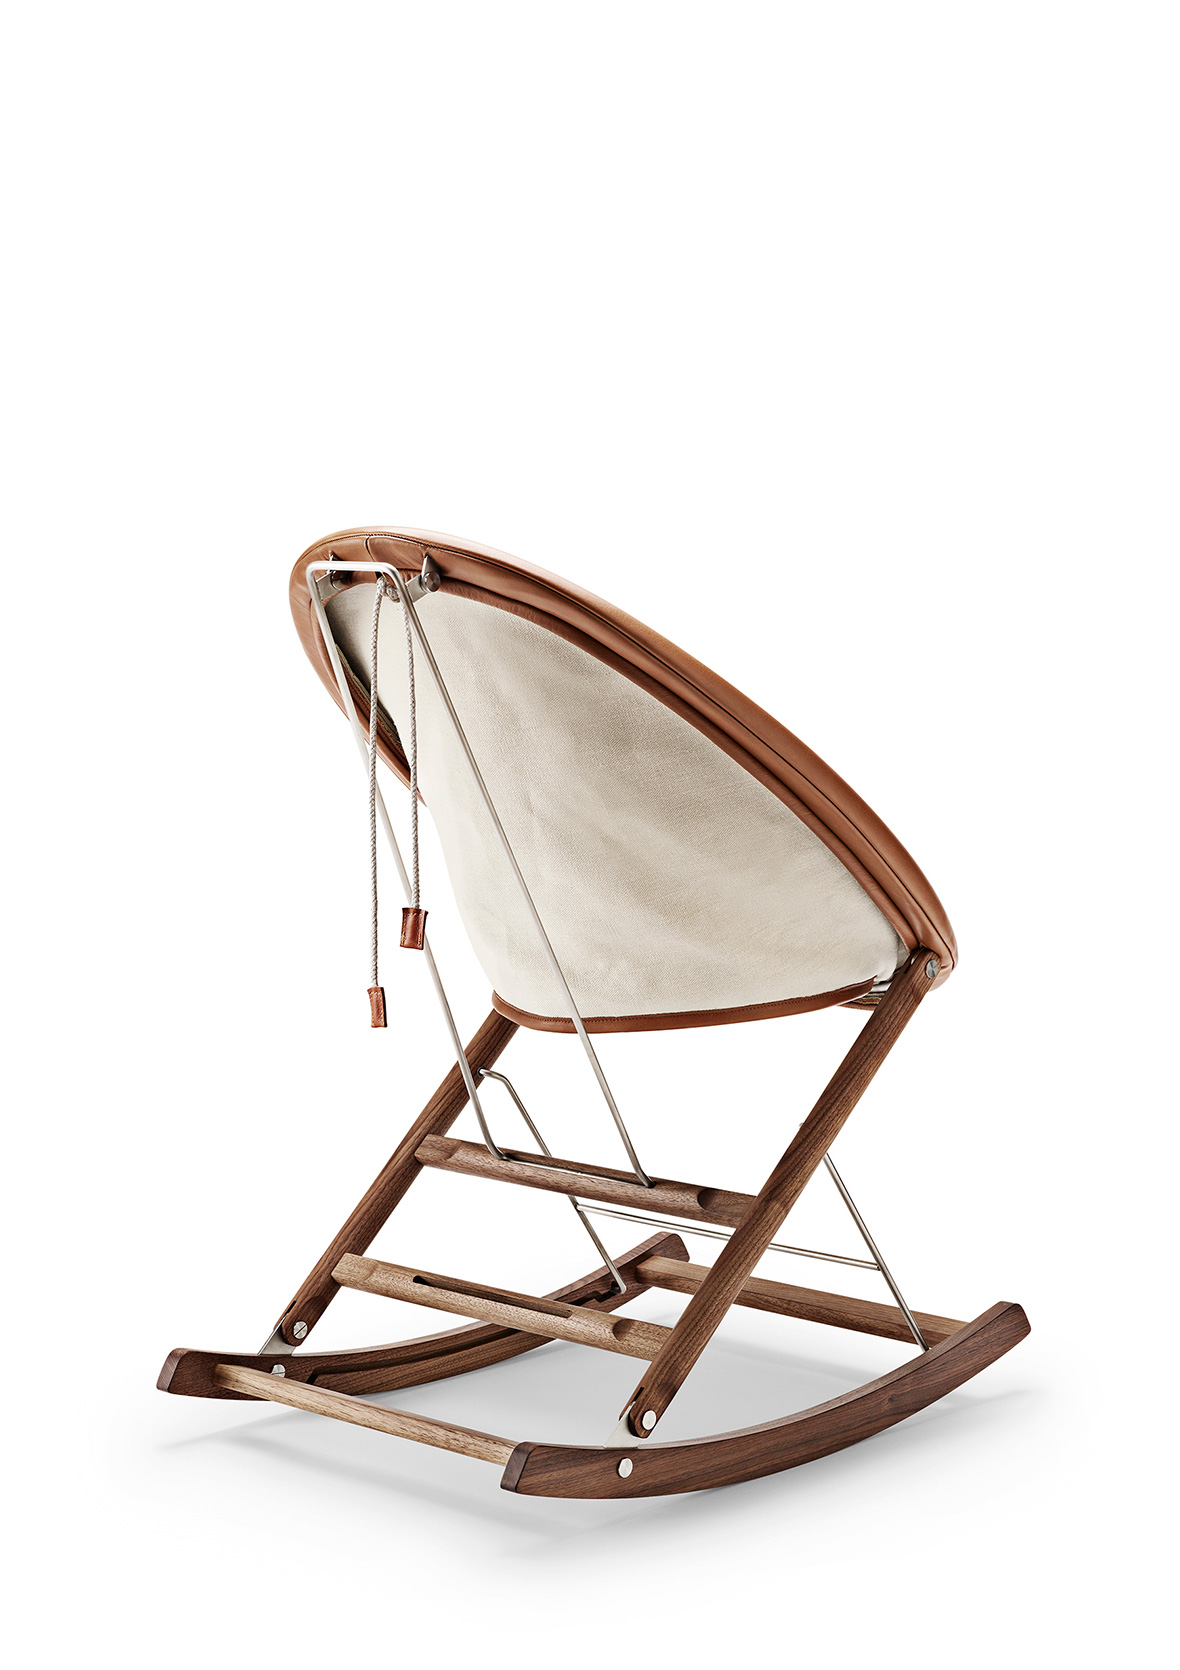 Rocking Nest Chair by Carl Hansen at Salone del Mobile 2017   Yellowtrace